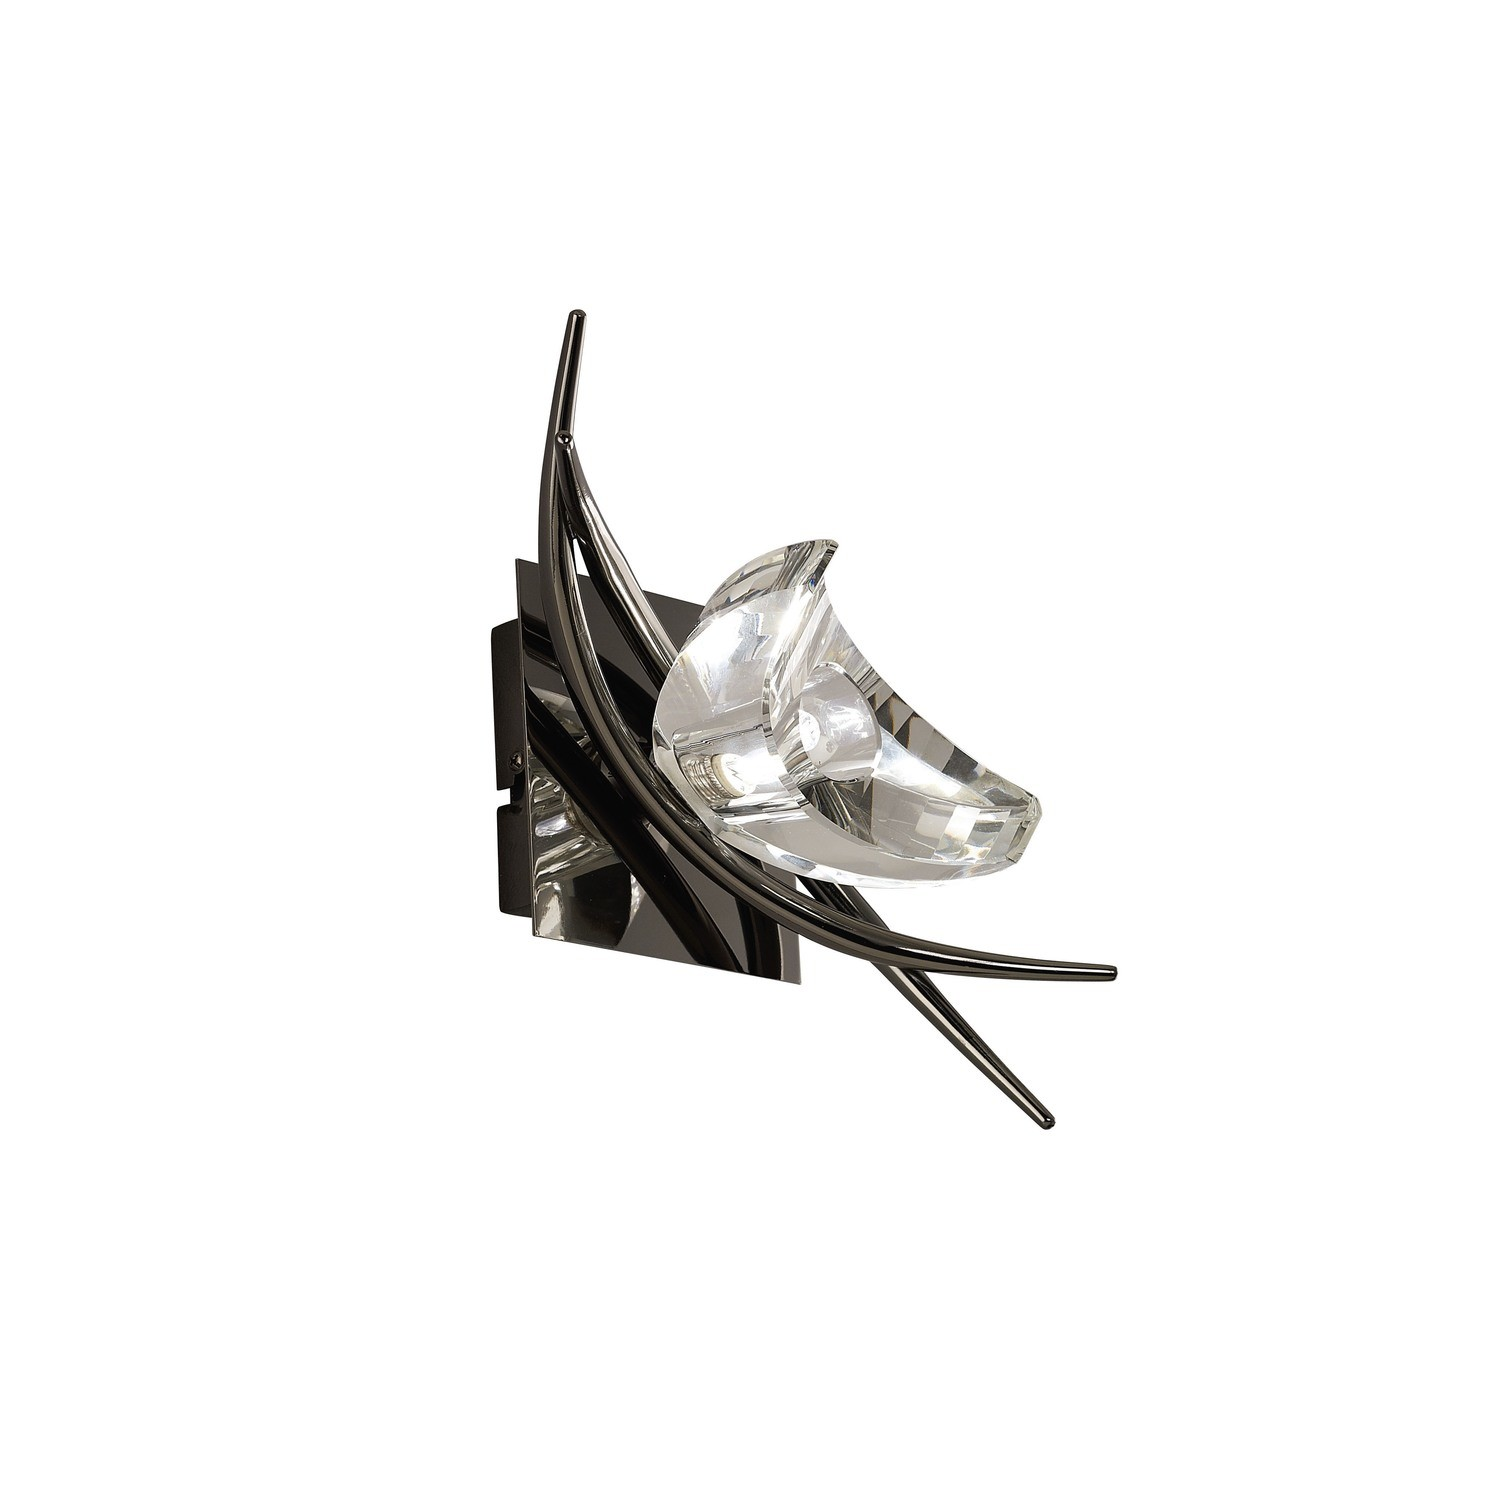 Eclipse Wall Lamp Switched 1 Light G9, Black Chrome